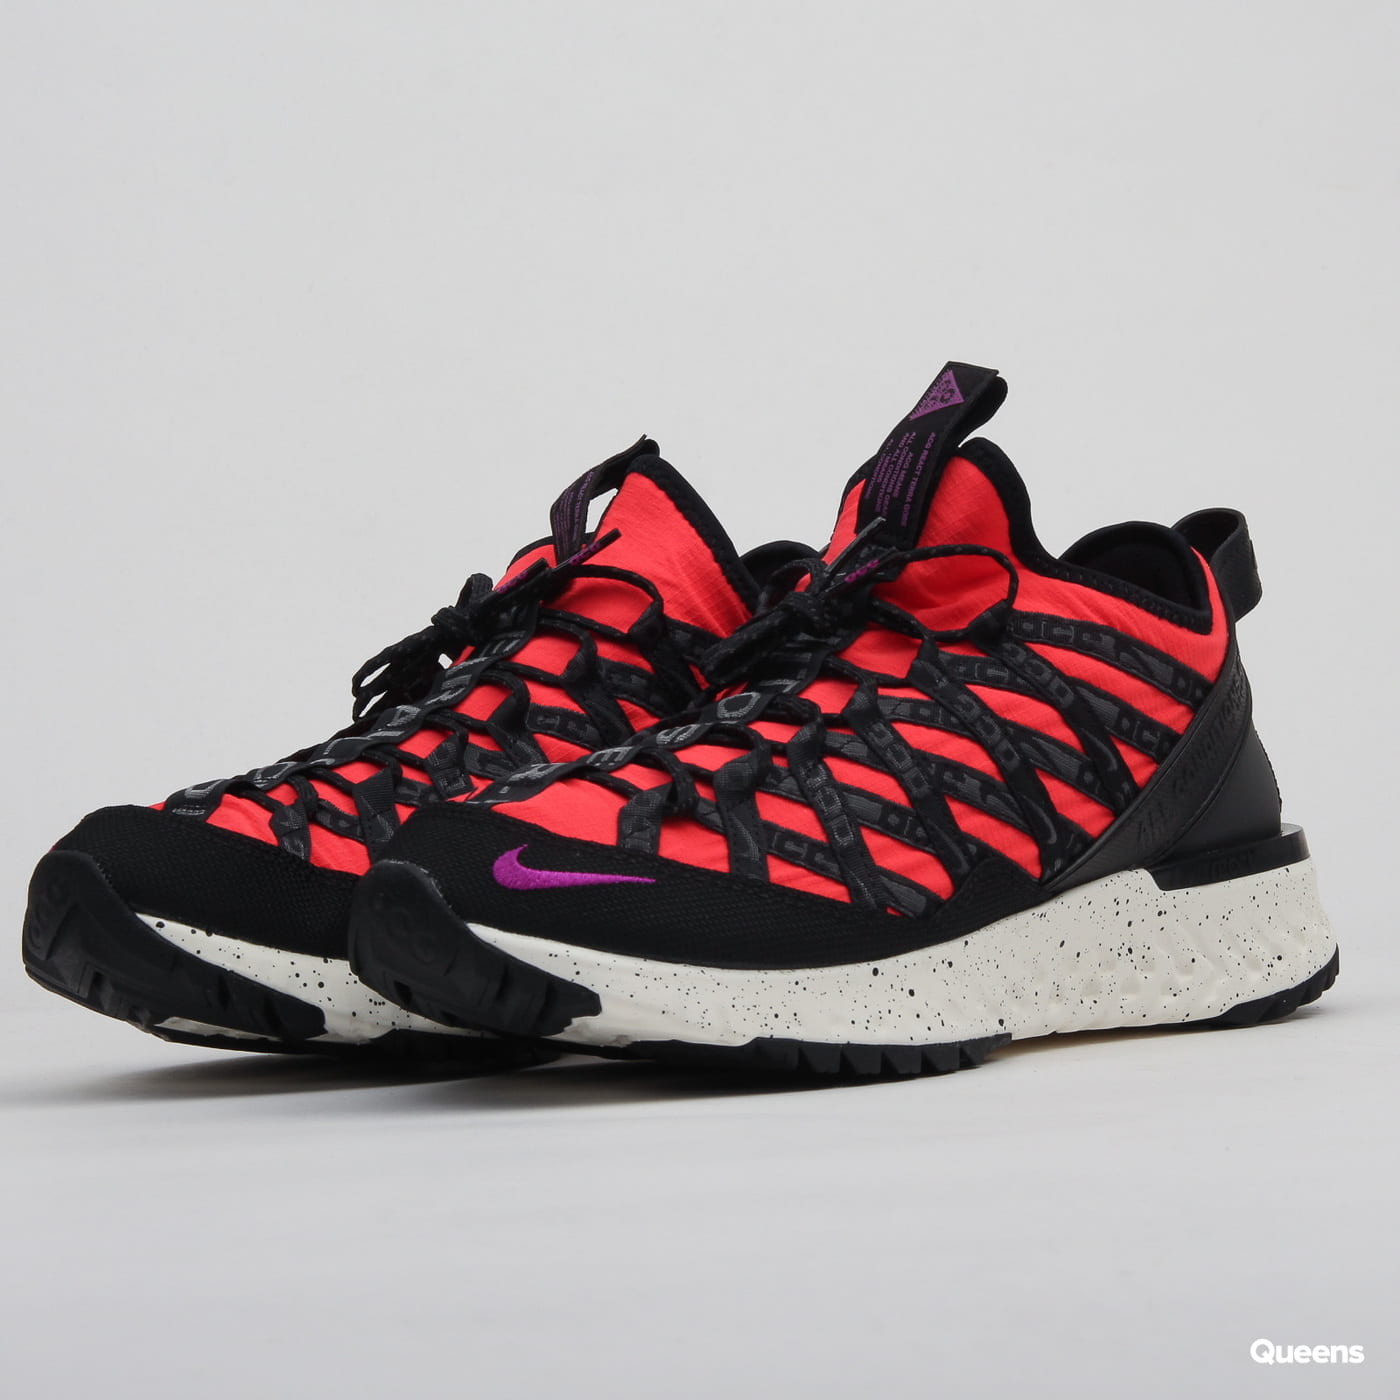 Nike ACG React Terra Gobe bright crimson / vivid purple